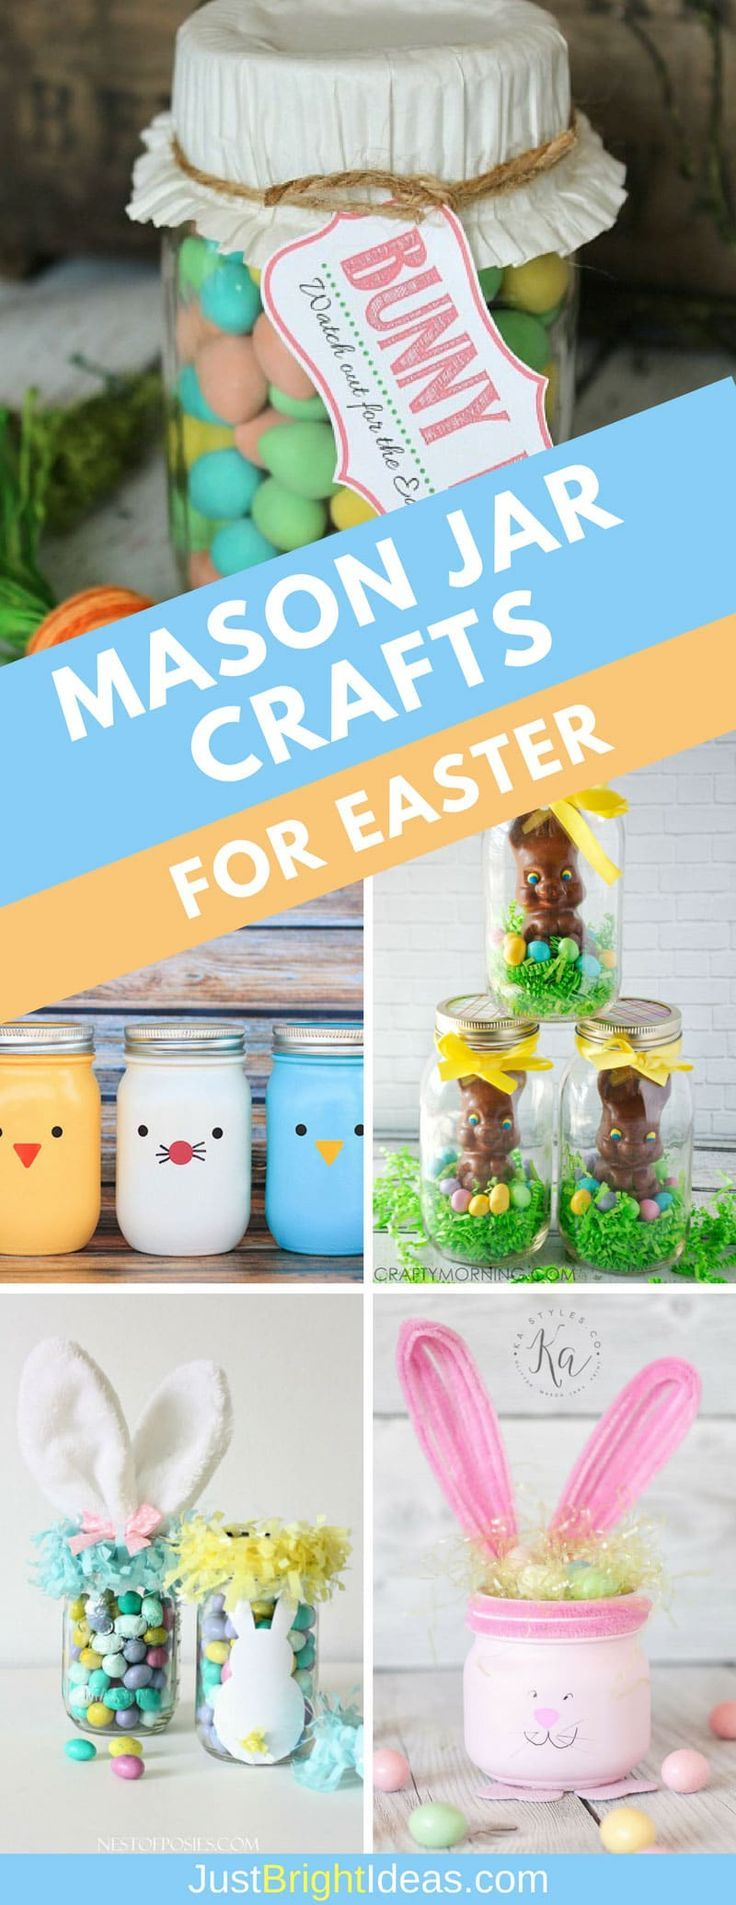 13 mason jar crafts for easter that would make the easter bunny 13 mason jar crafts for easter that would make the easter bunny jealous negle Image collections